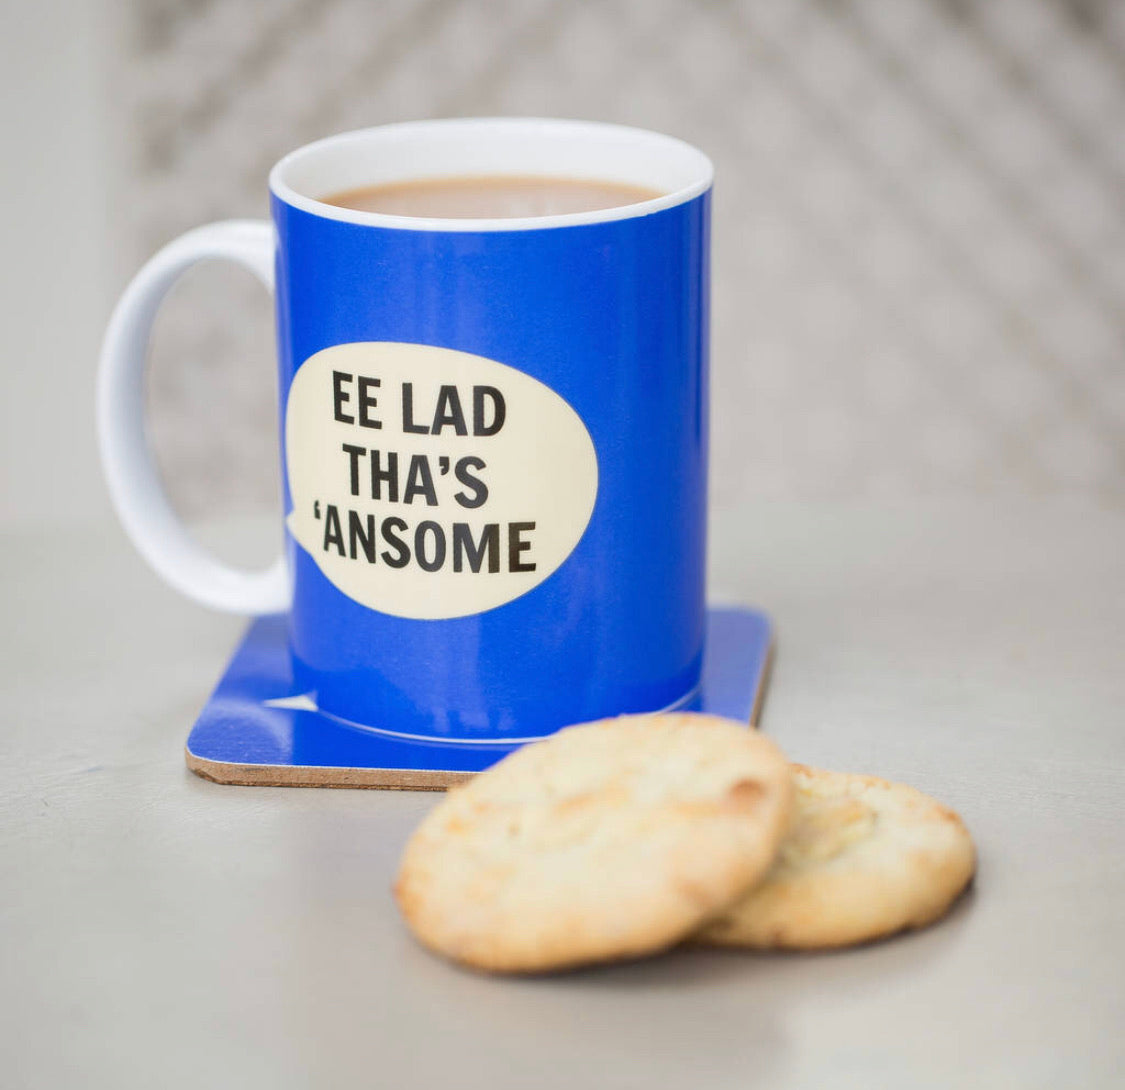 Yorkshire Mug - 'Ee Lad Tha's 'Ansome